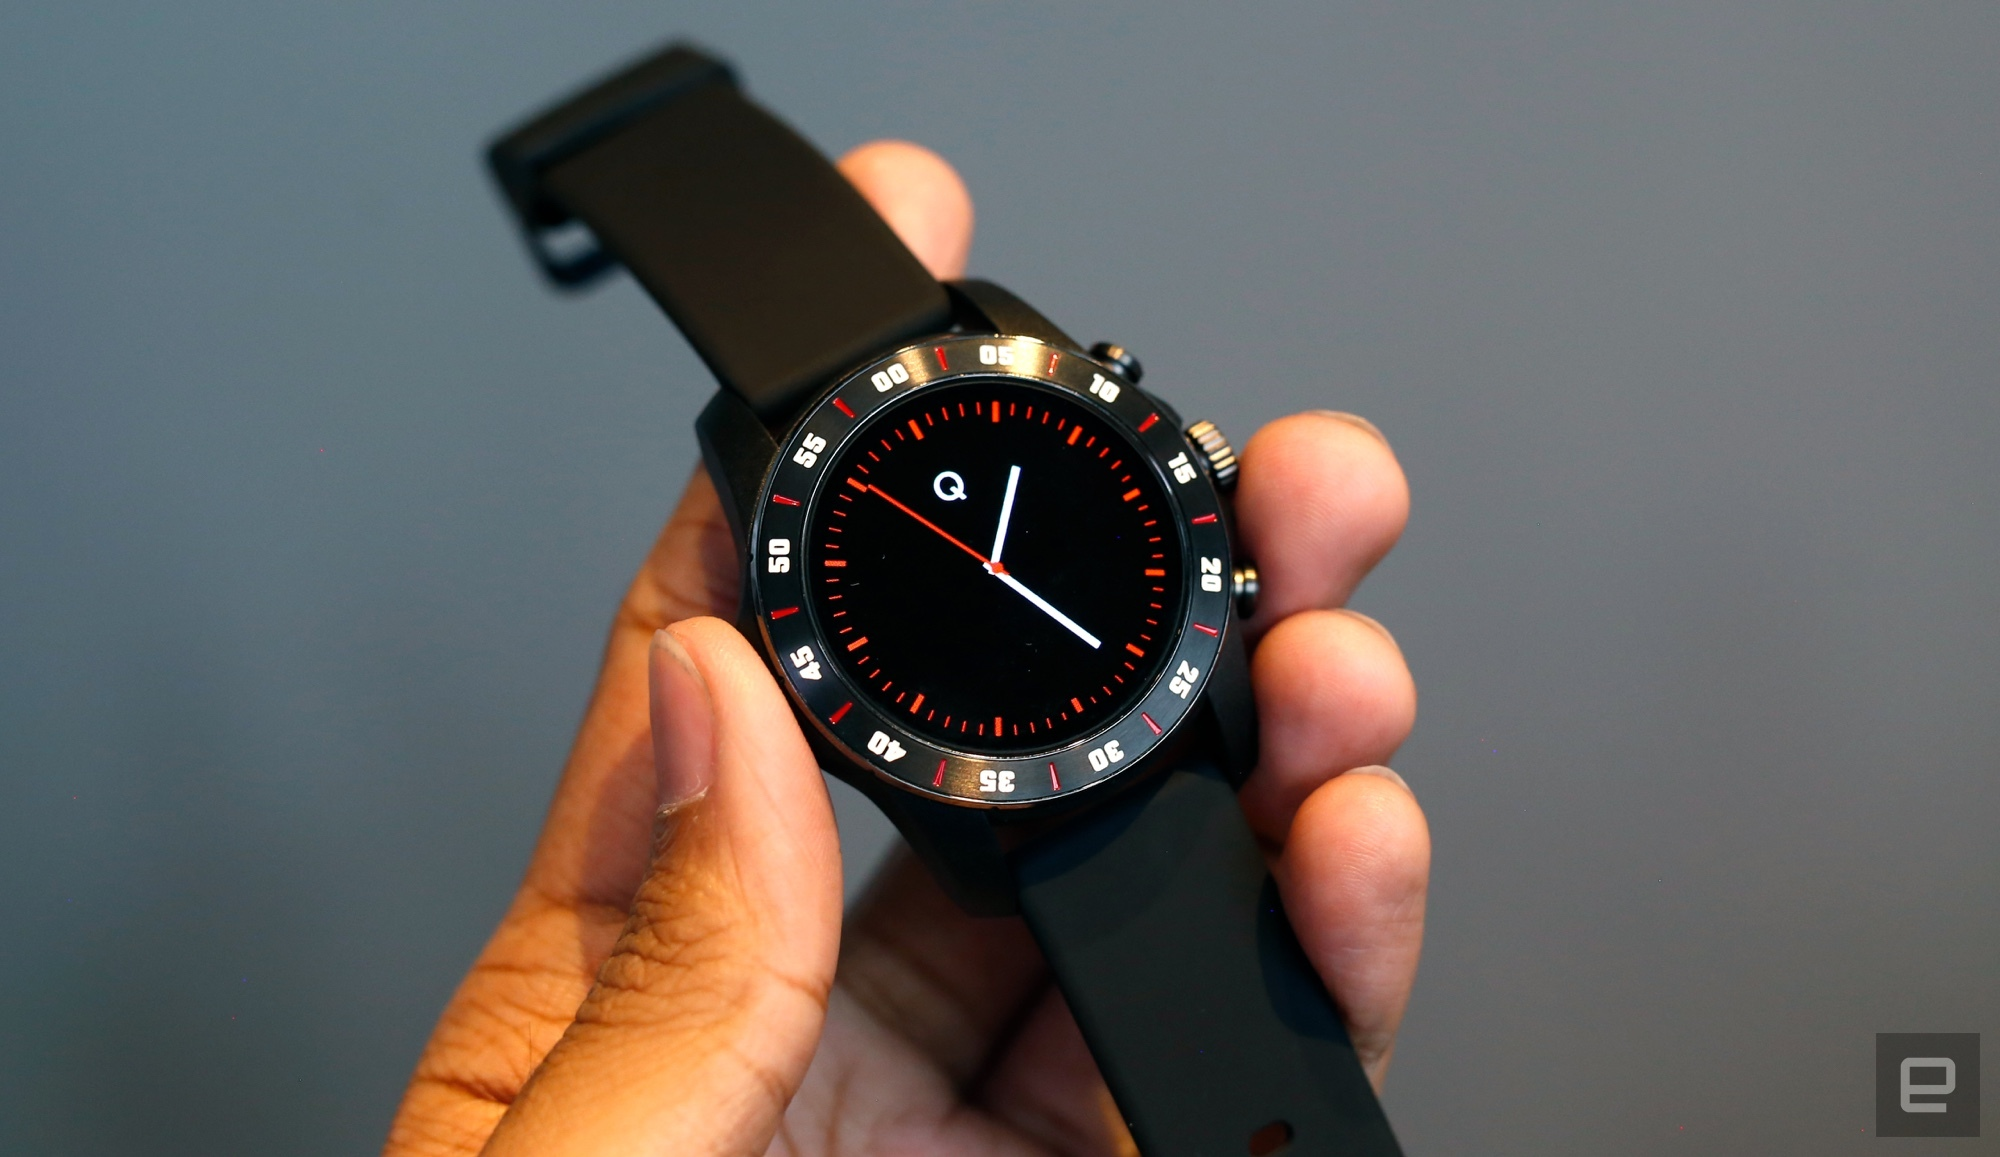 Qualcomm Launches Next-Gen Snapdragon Wear W3100 Smartwatch Platform